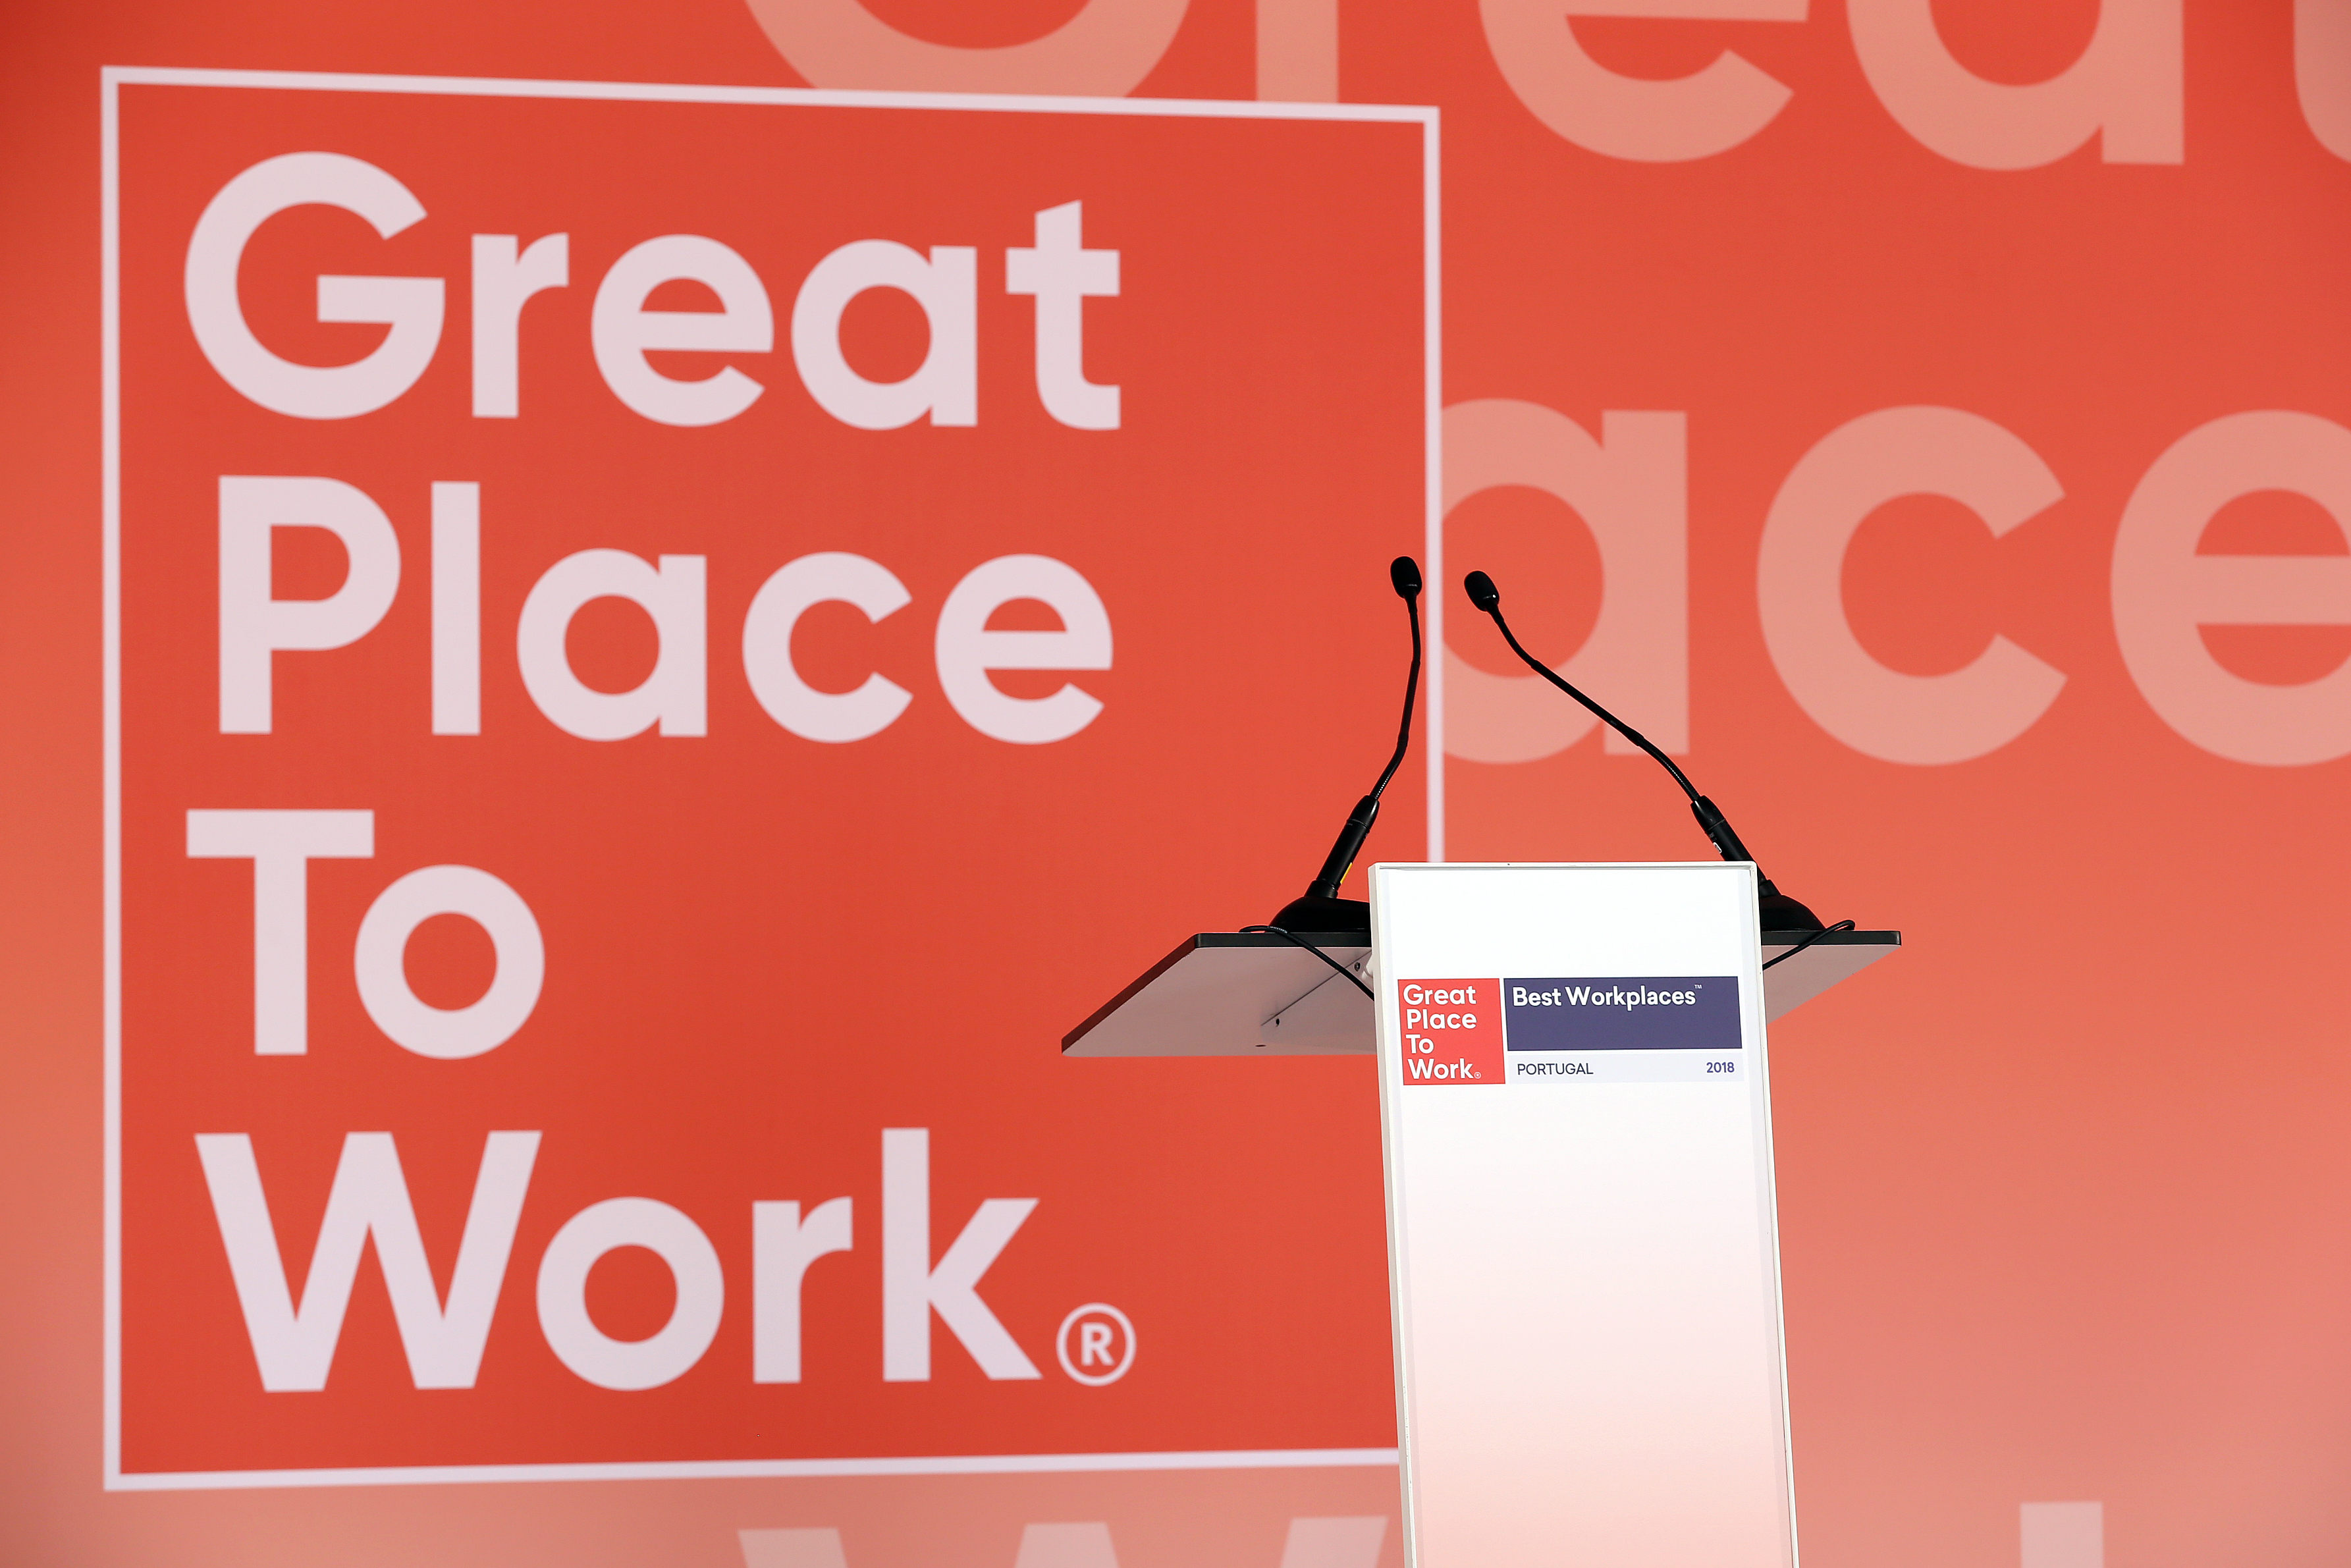 GREAT PLACE TO WORK 2018 076